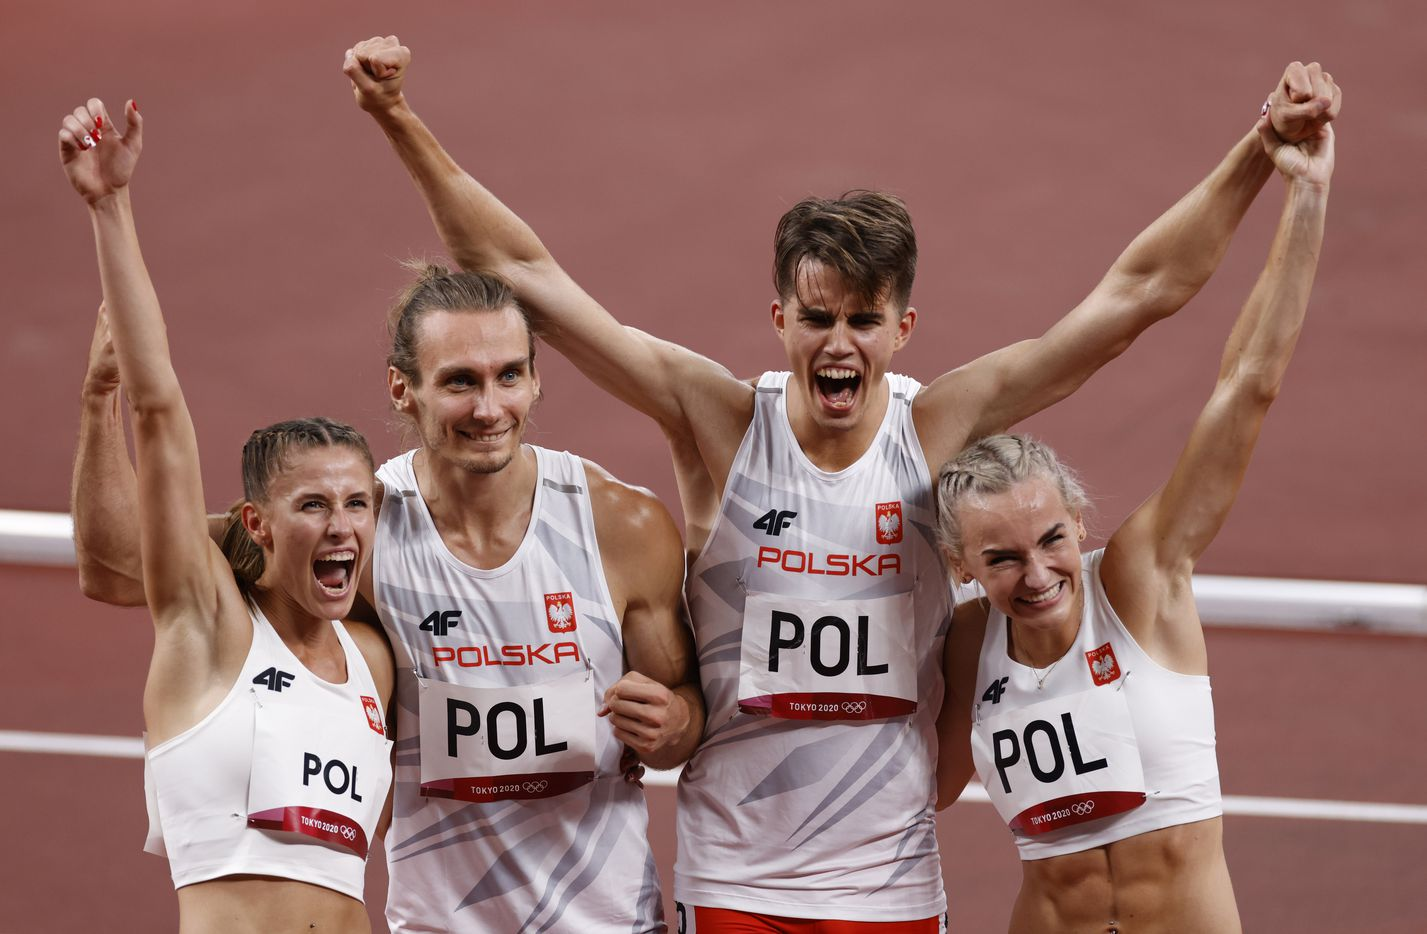 (From l to r) Poland's Natalia Kacmarek, Karol Zalewski, Kajetan Duszynski and Justyna Swiety-Ersetic pose for photographers after setting an Olympic record after winning the mixed 4x400m relay final during the postponed 2020 Tokyo Olympics at Olympic Stadium, on Saturday, July 31, 2021, in Tokyo, Japan. (Vernon Bryant/The Dallas Morning News)